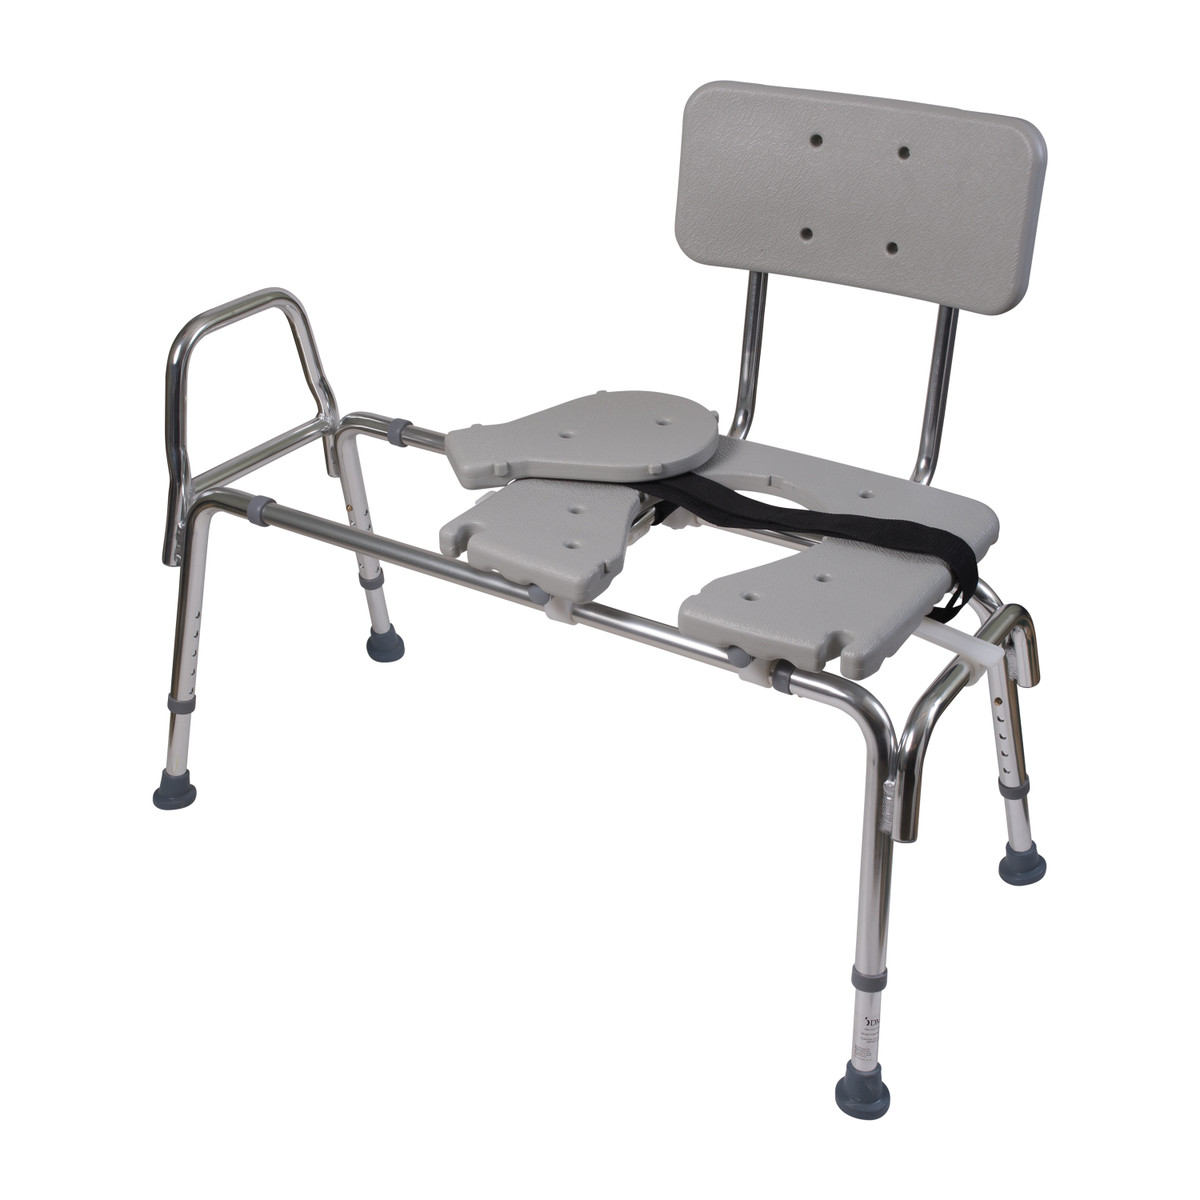 Astonishing Heavy Duty Sliding Transfer Bench With Cut Out Seat At Indemedical Com Machost Co Dining Chair Design Ideas Machostcouk